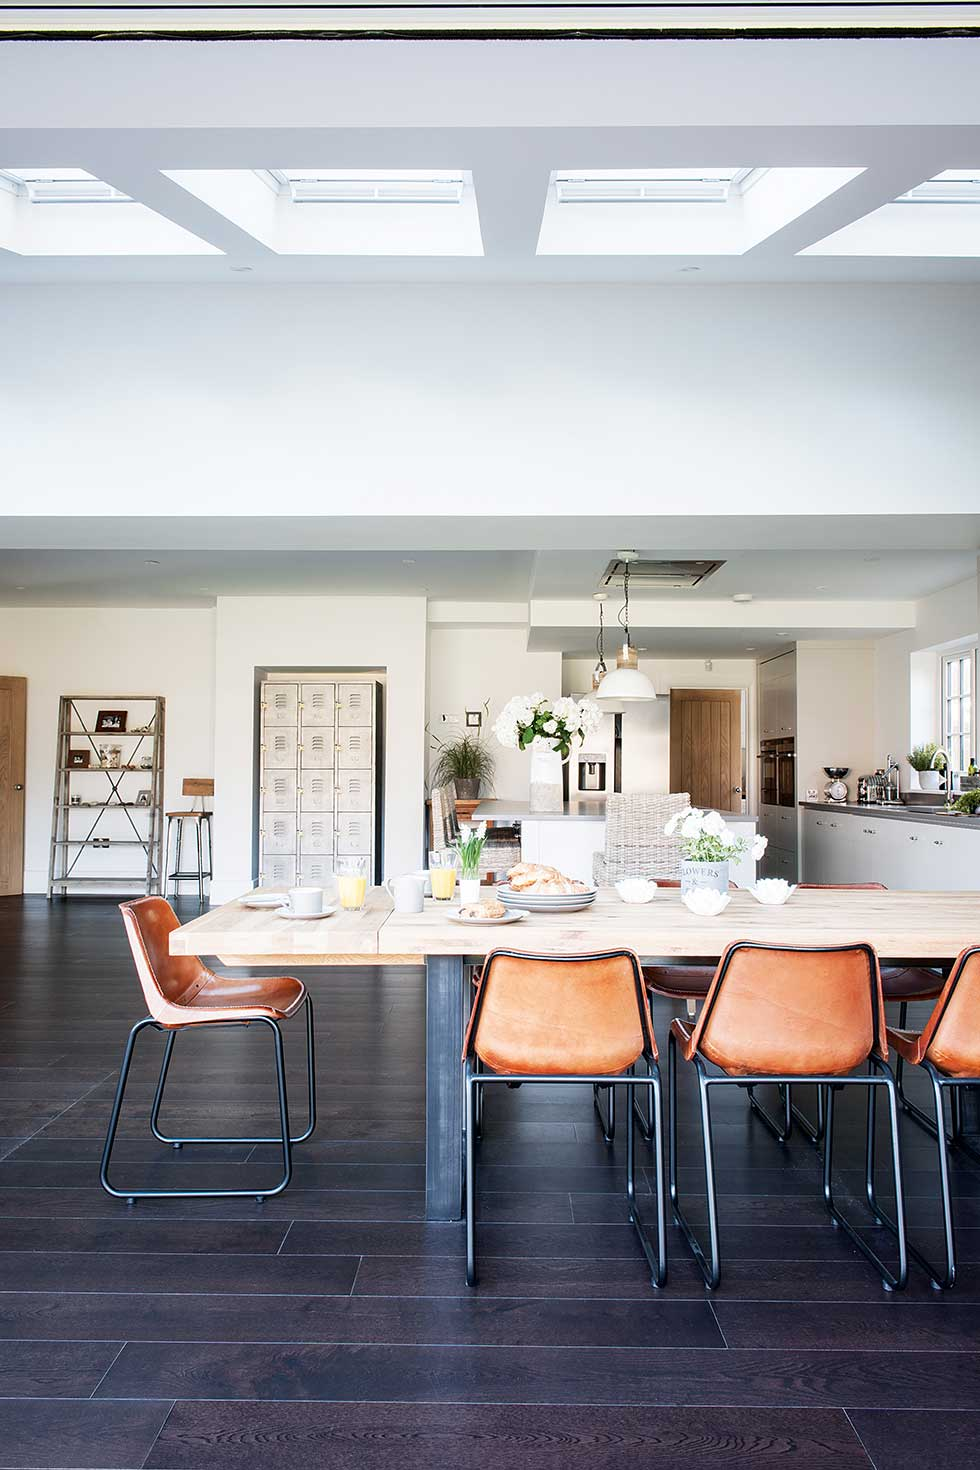 Industrial kitchen extension dining area rooflights leather chairs